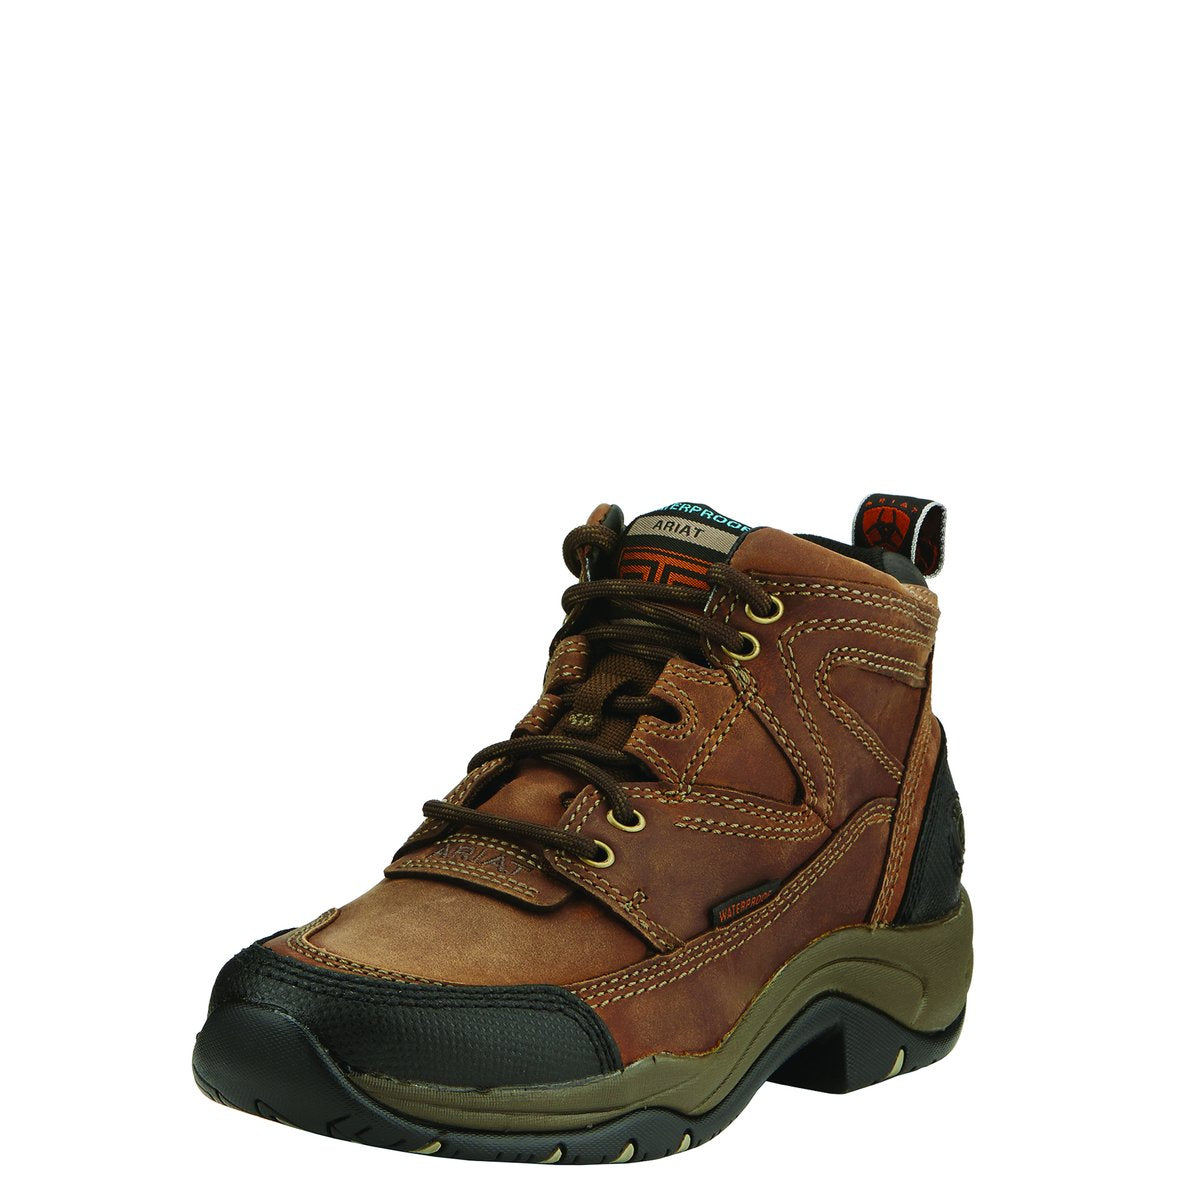 Ariat Womens Duraterrain H2O Boots